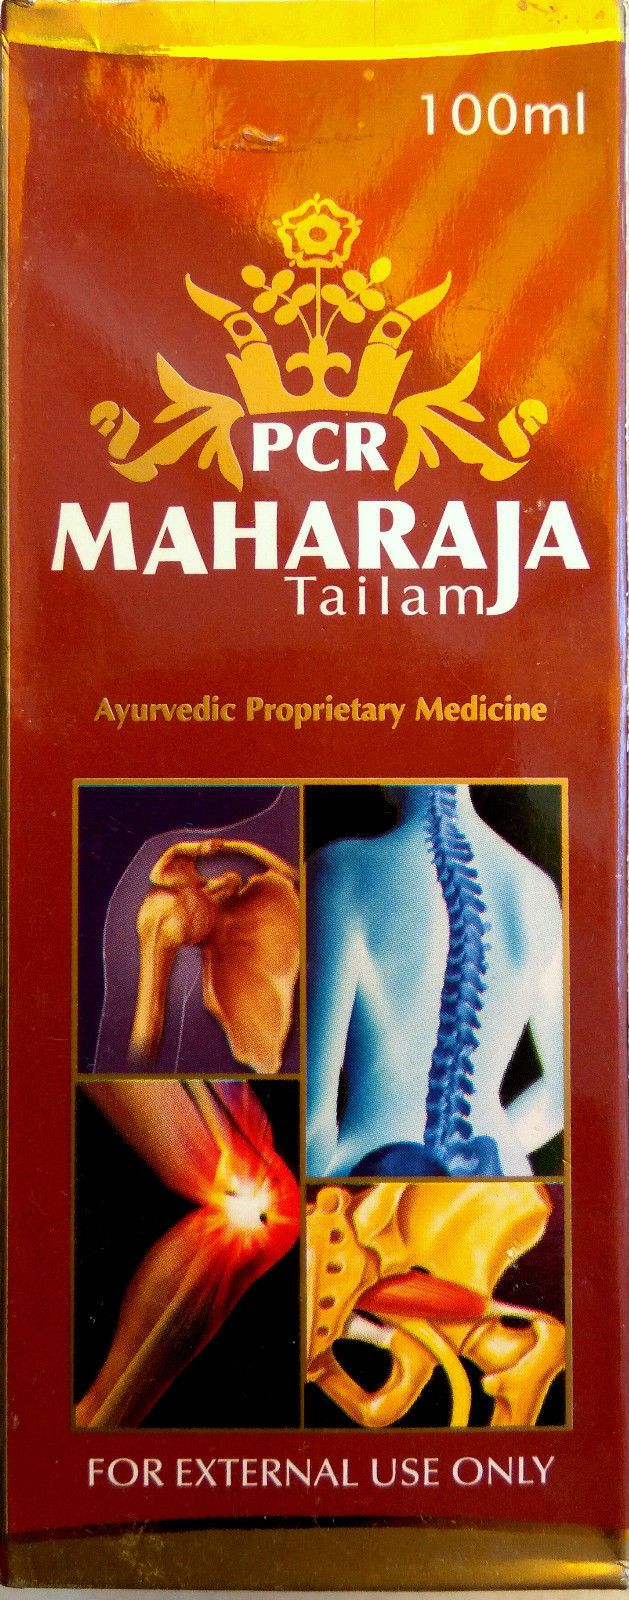 PCR Maharaja Tailam 100ml Oil for Joint Pains (Ayurvedic)